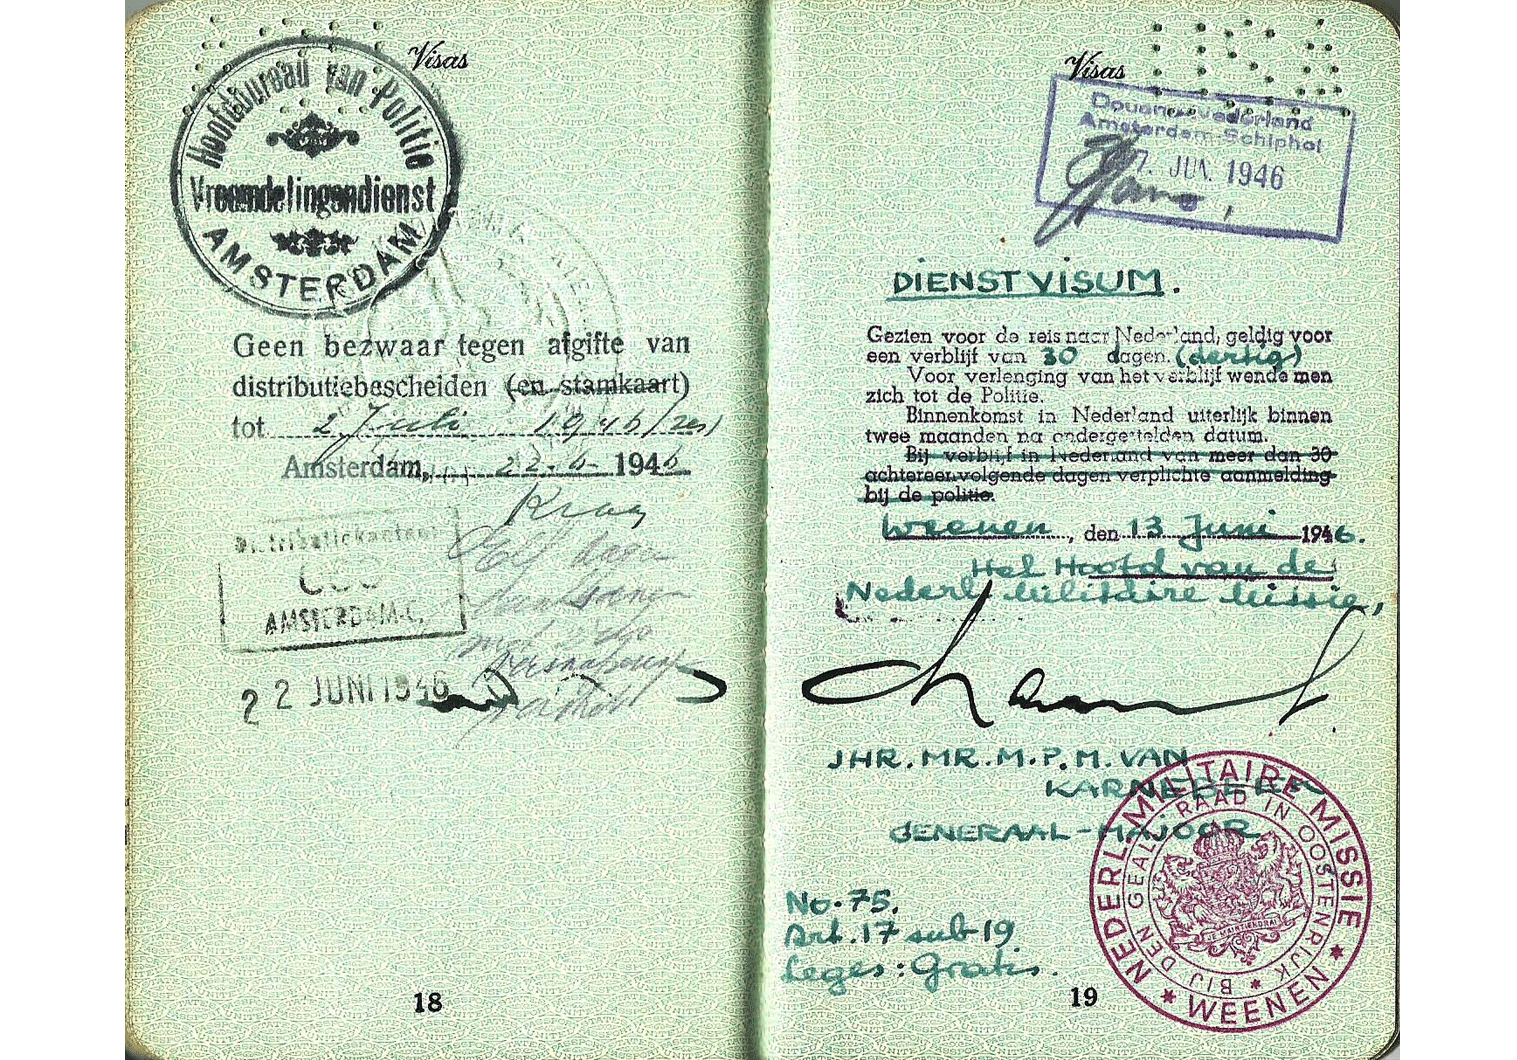 WW2 military mission visa